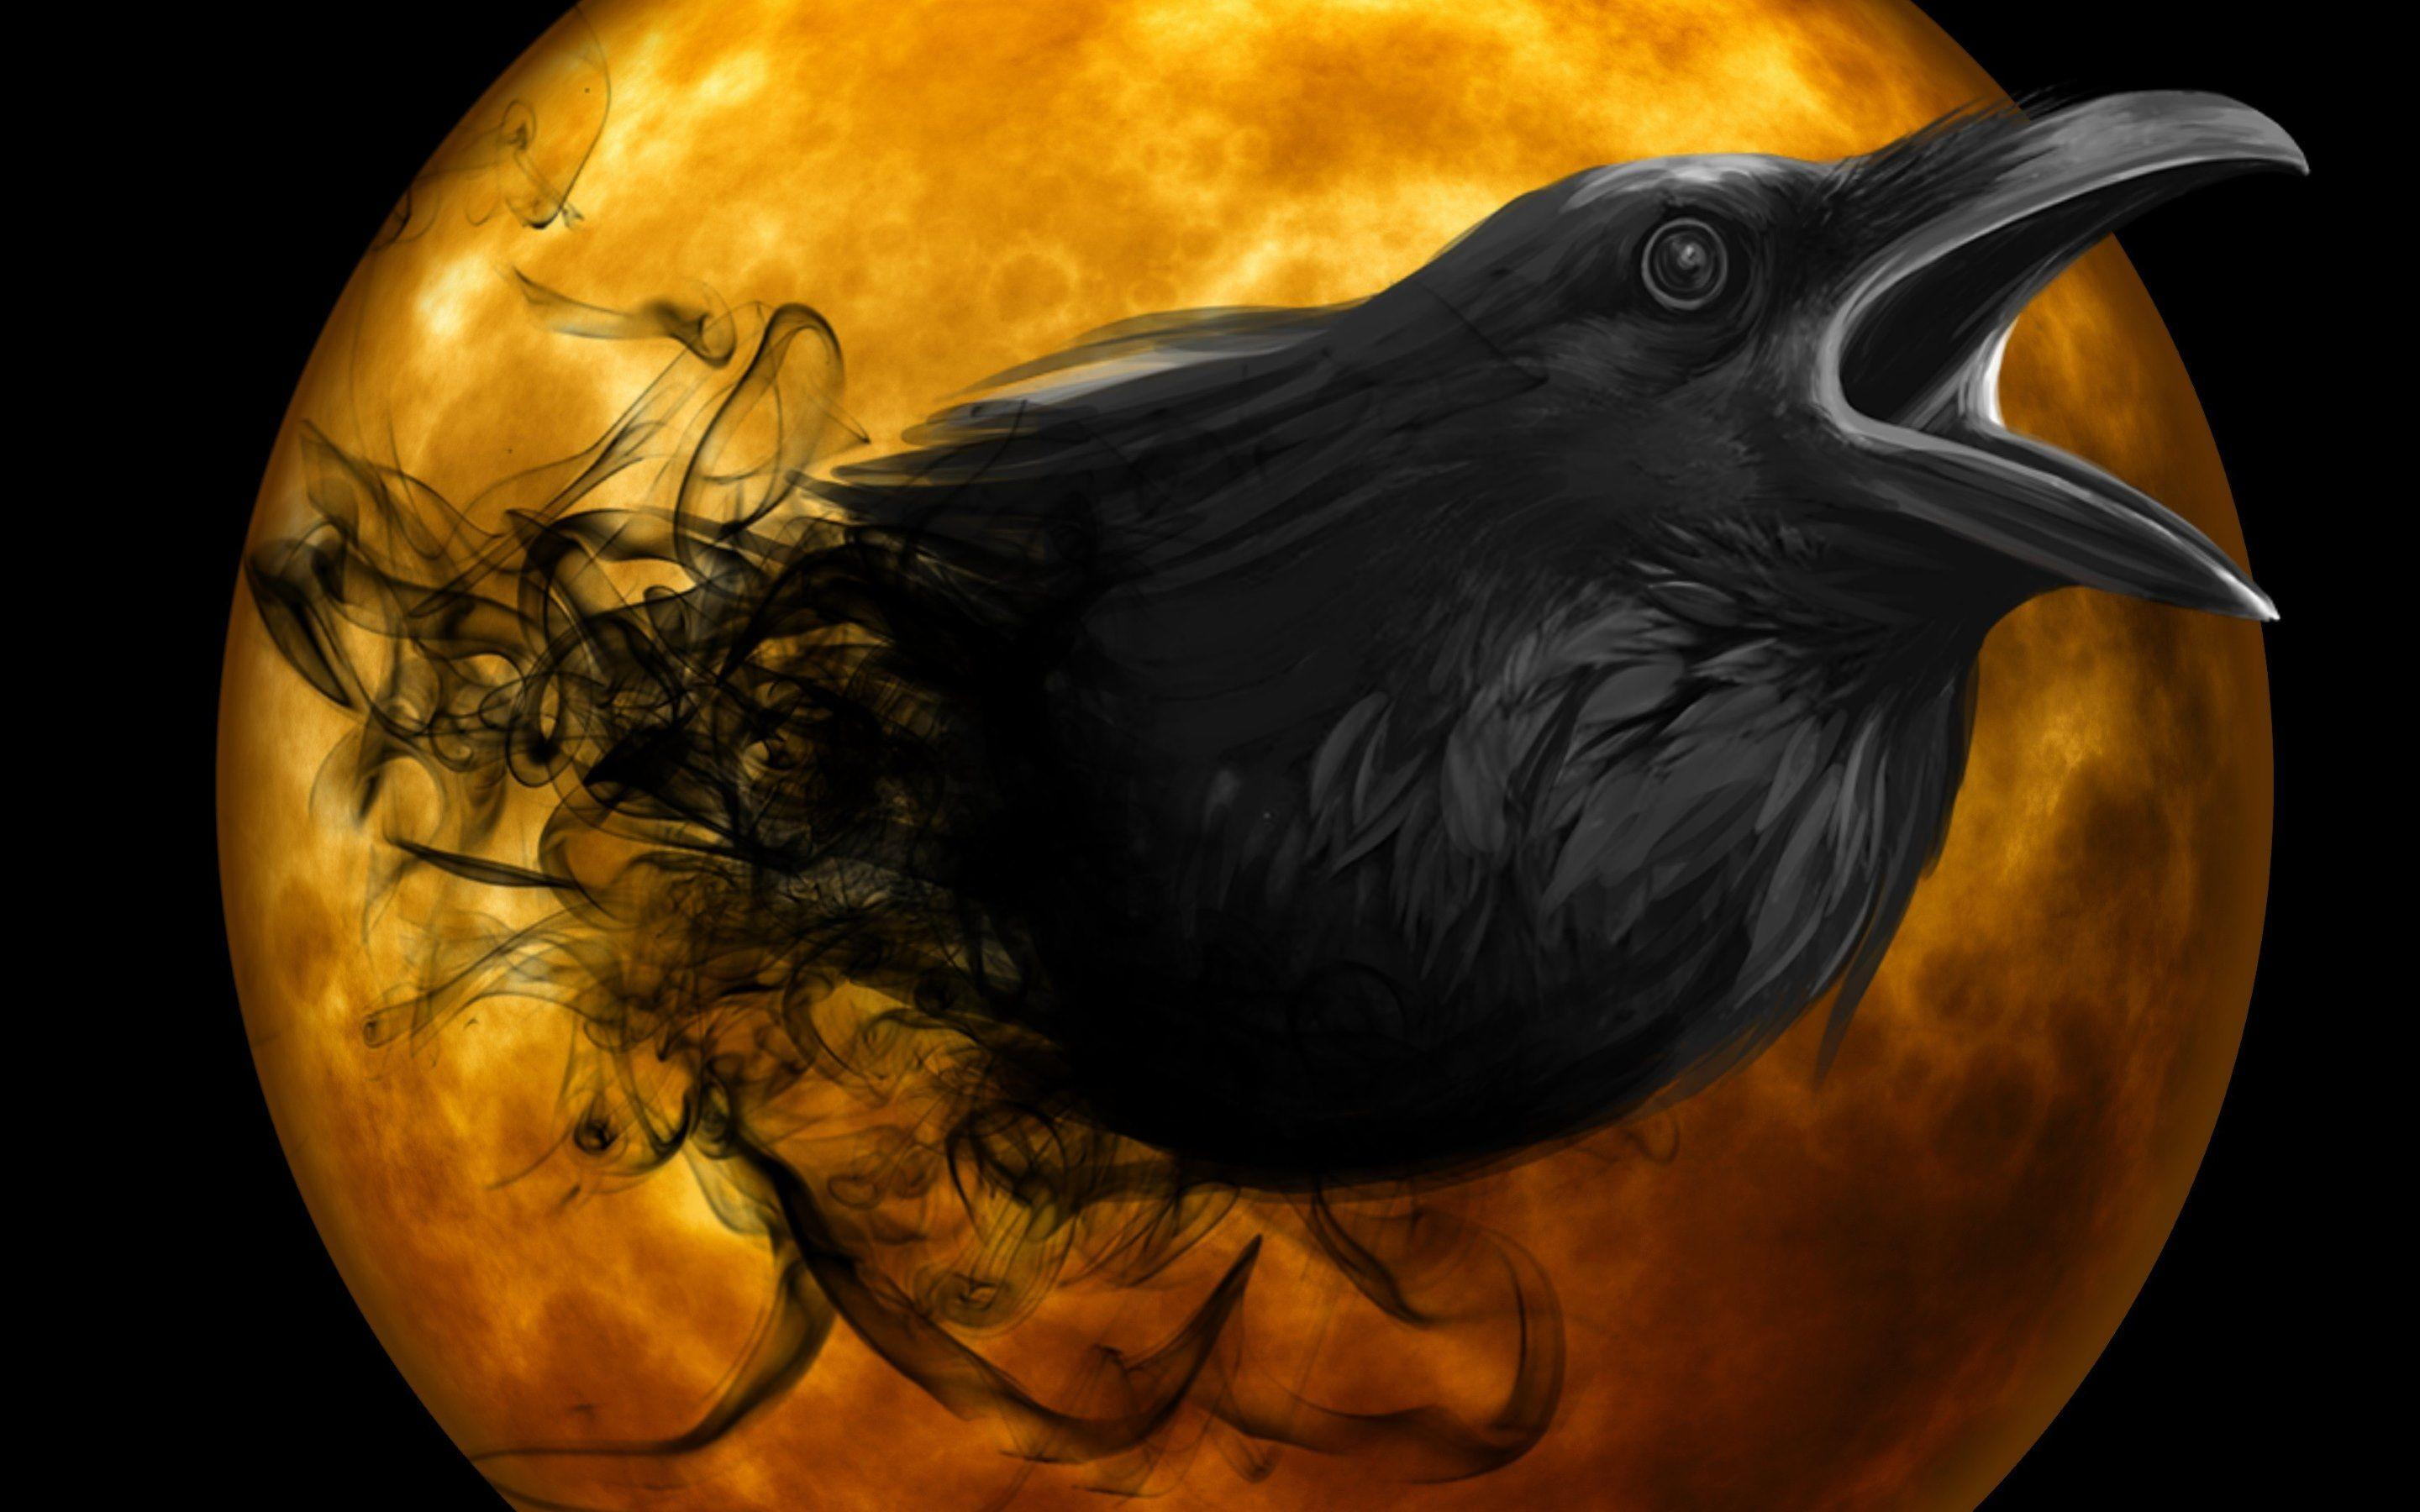 Raven's Spirit Full HD Wallpaper and Background | 2880x1800 | ID ...